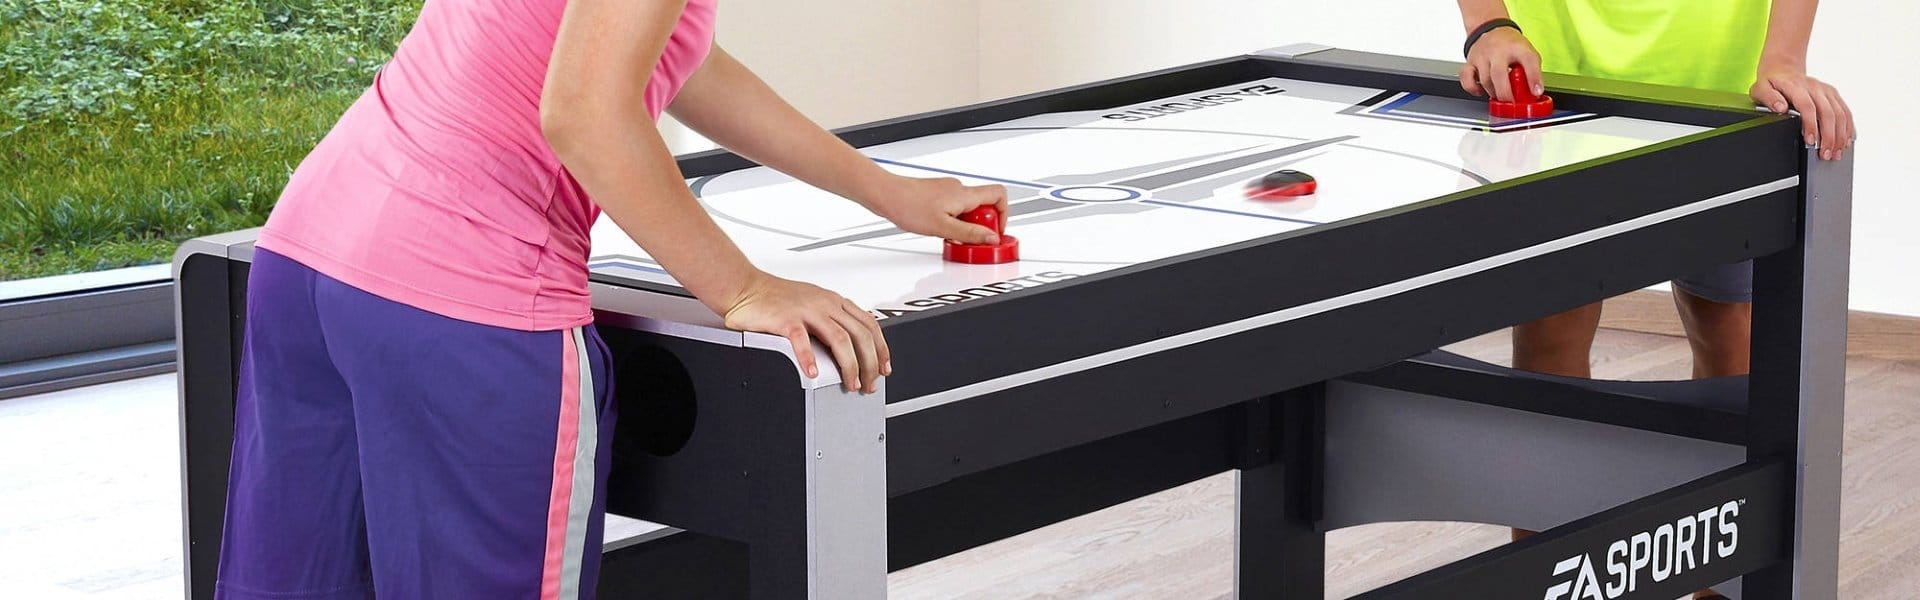 Best Air Hockey Ping Pong Table Combos Reviewed in Detail